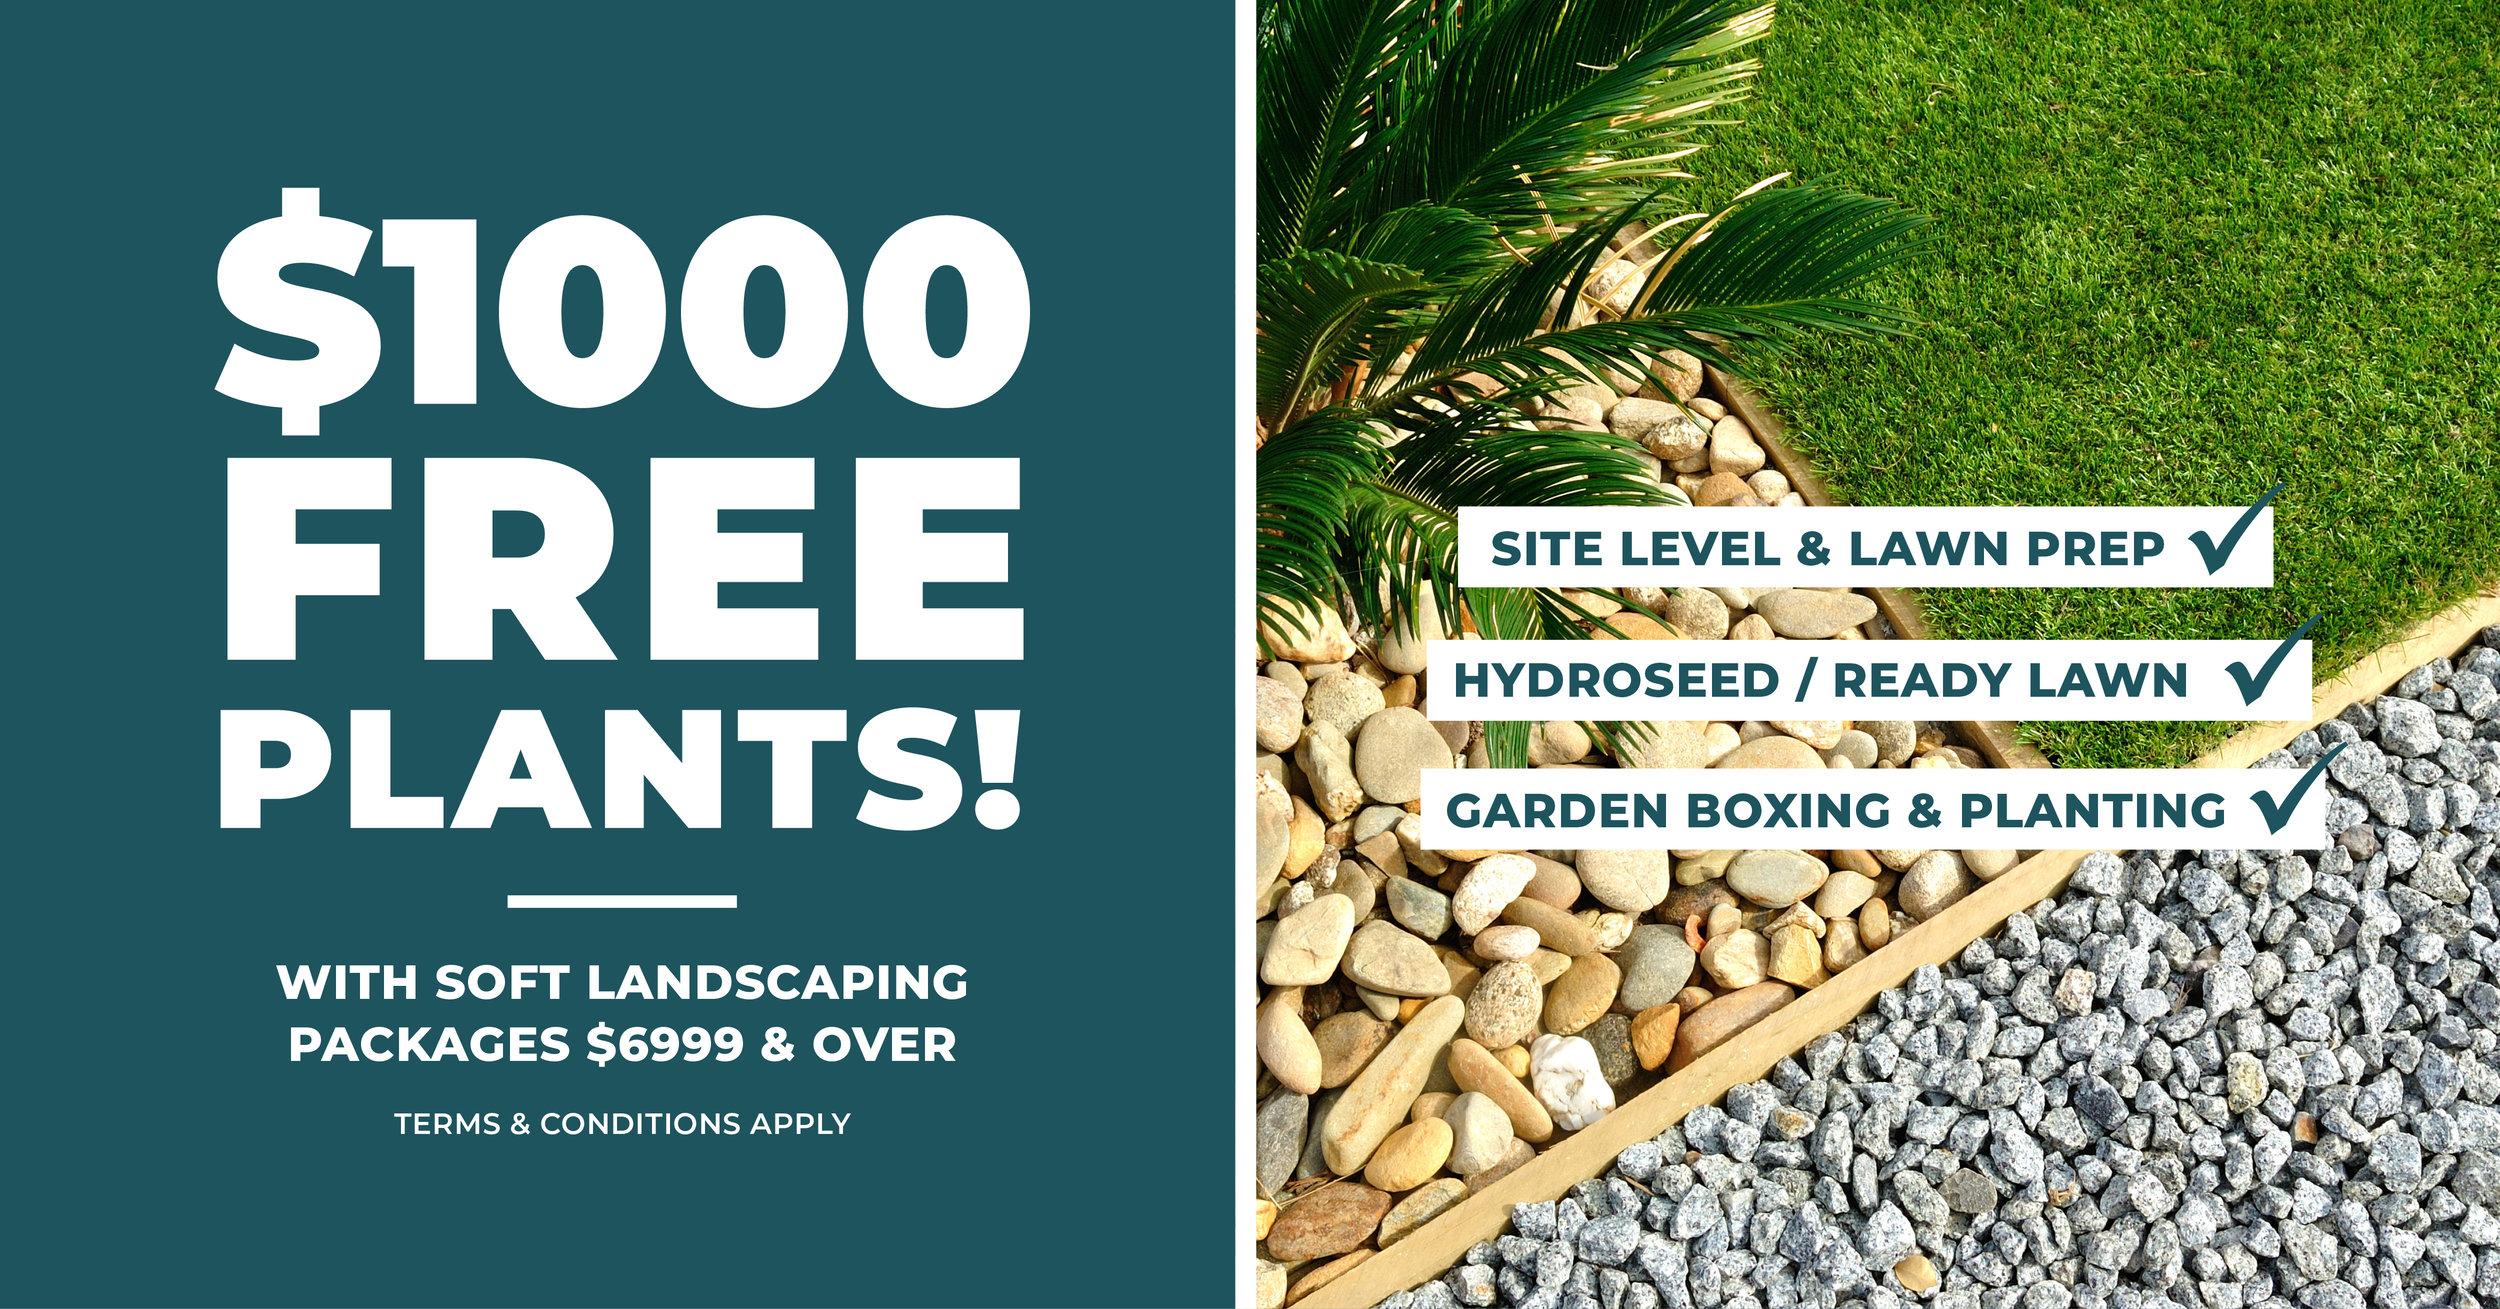 Mana Softscapes - Free Plants Promo - Med Res.jpg